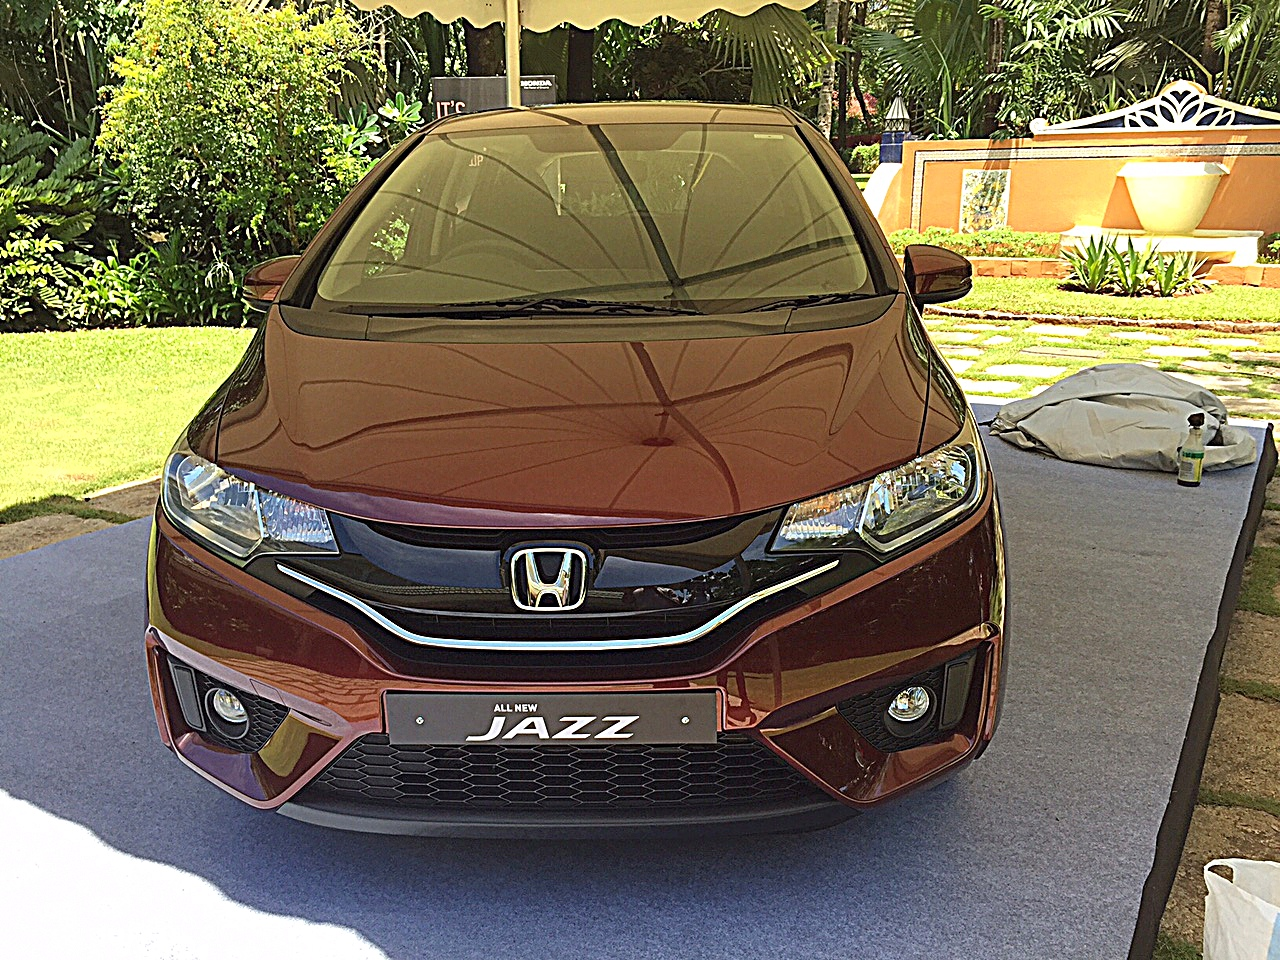 2015-honda-jazz-review-4